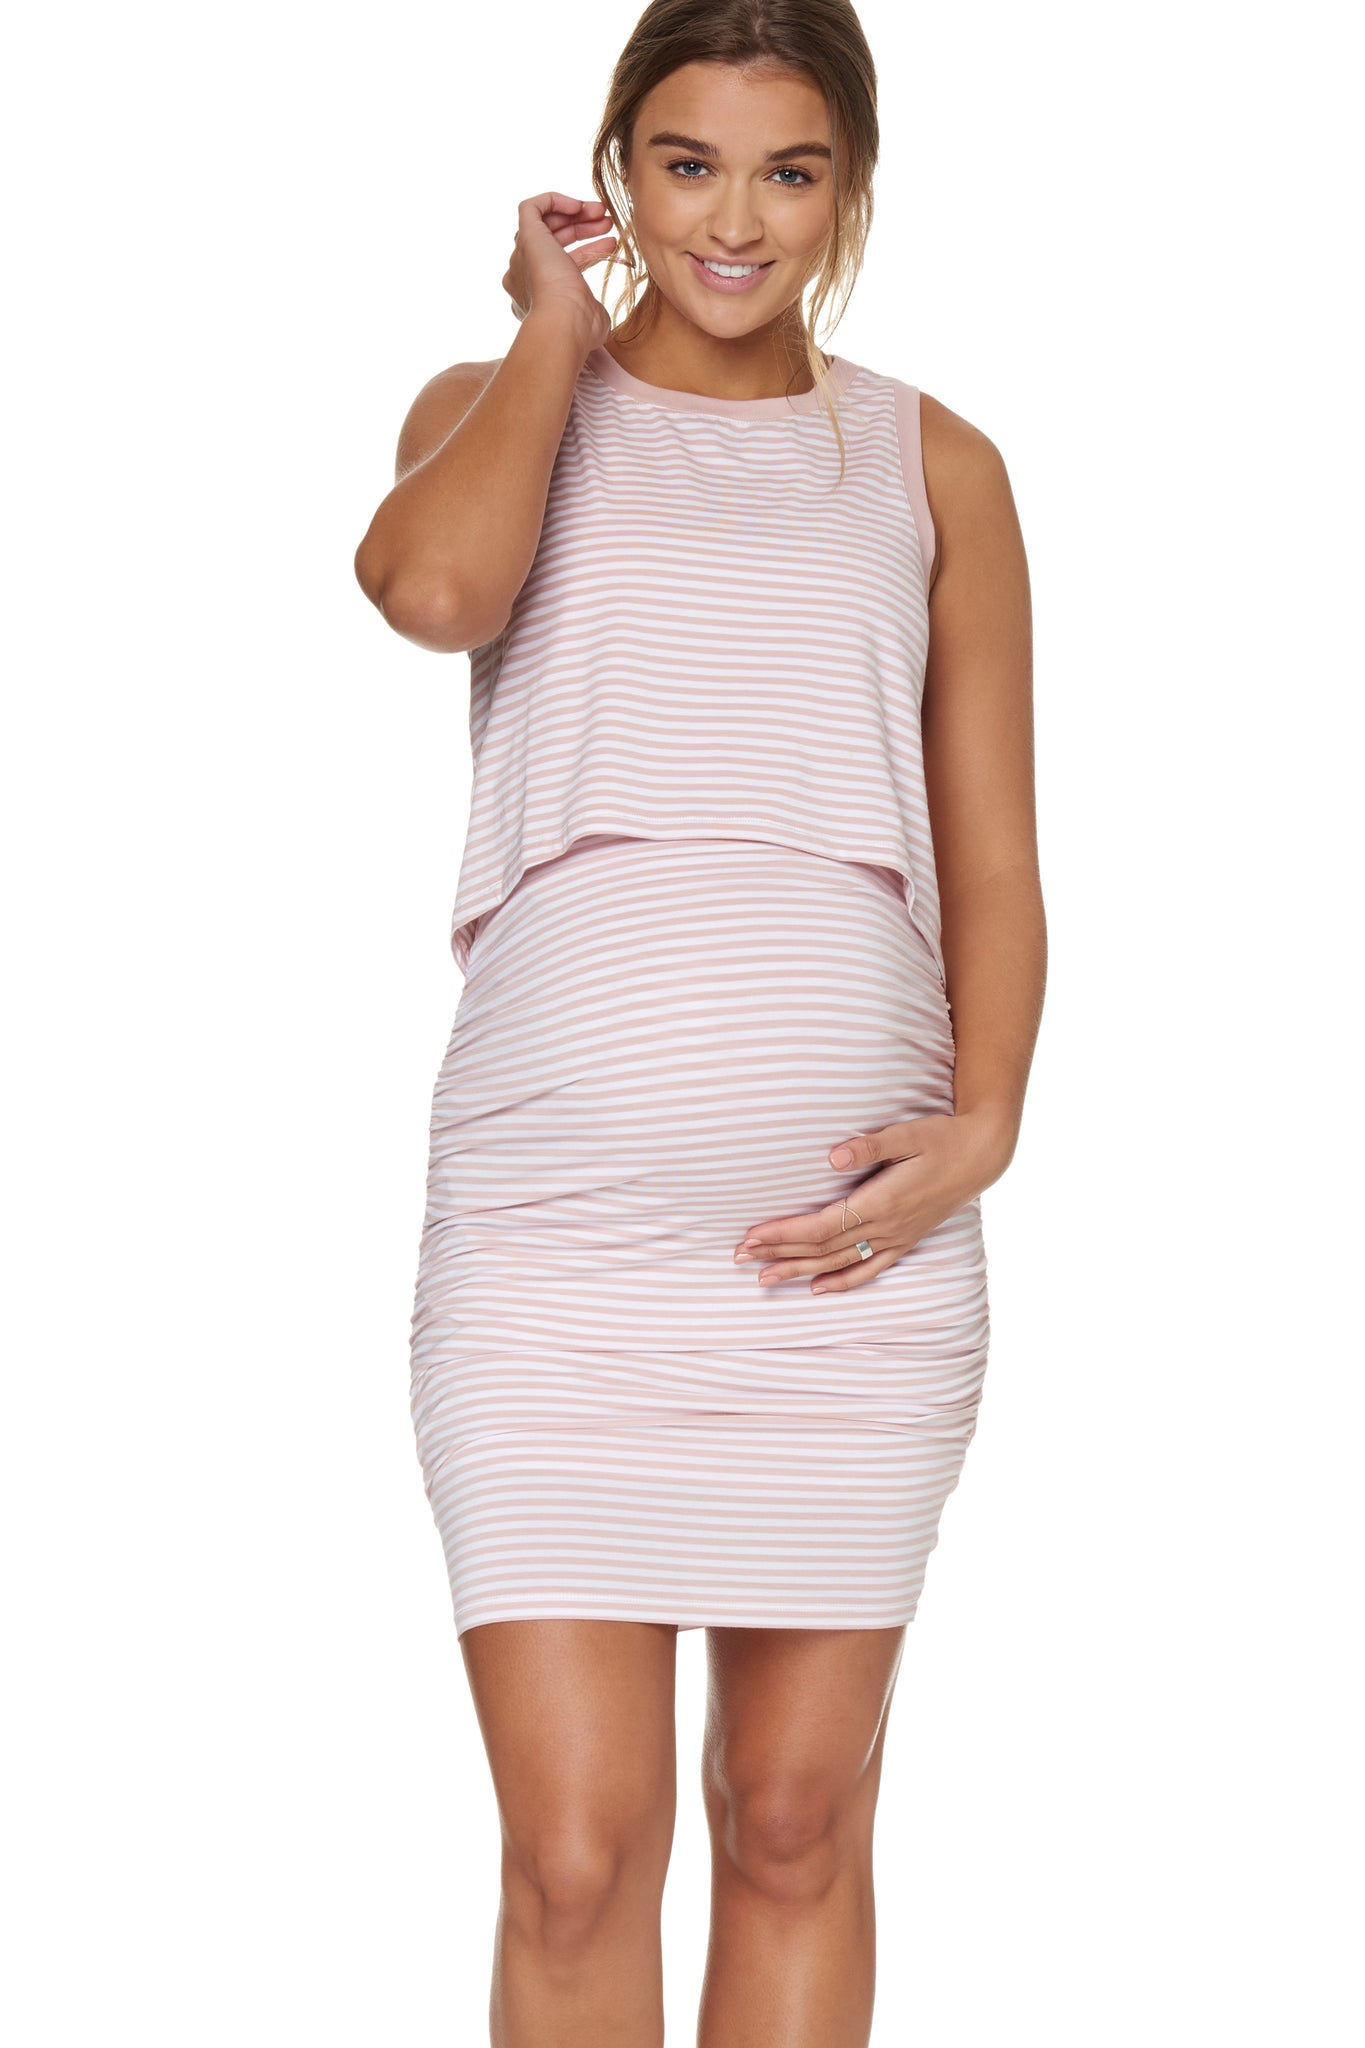 Stripe nursing & maternity dress - pink 1